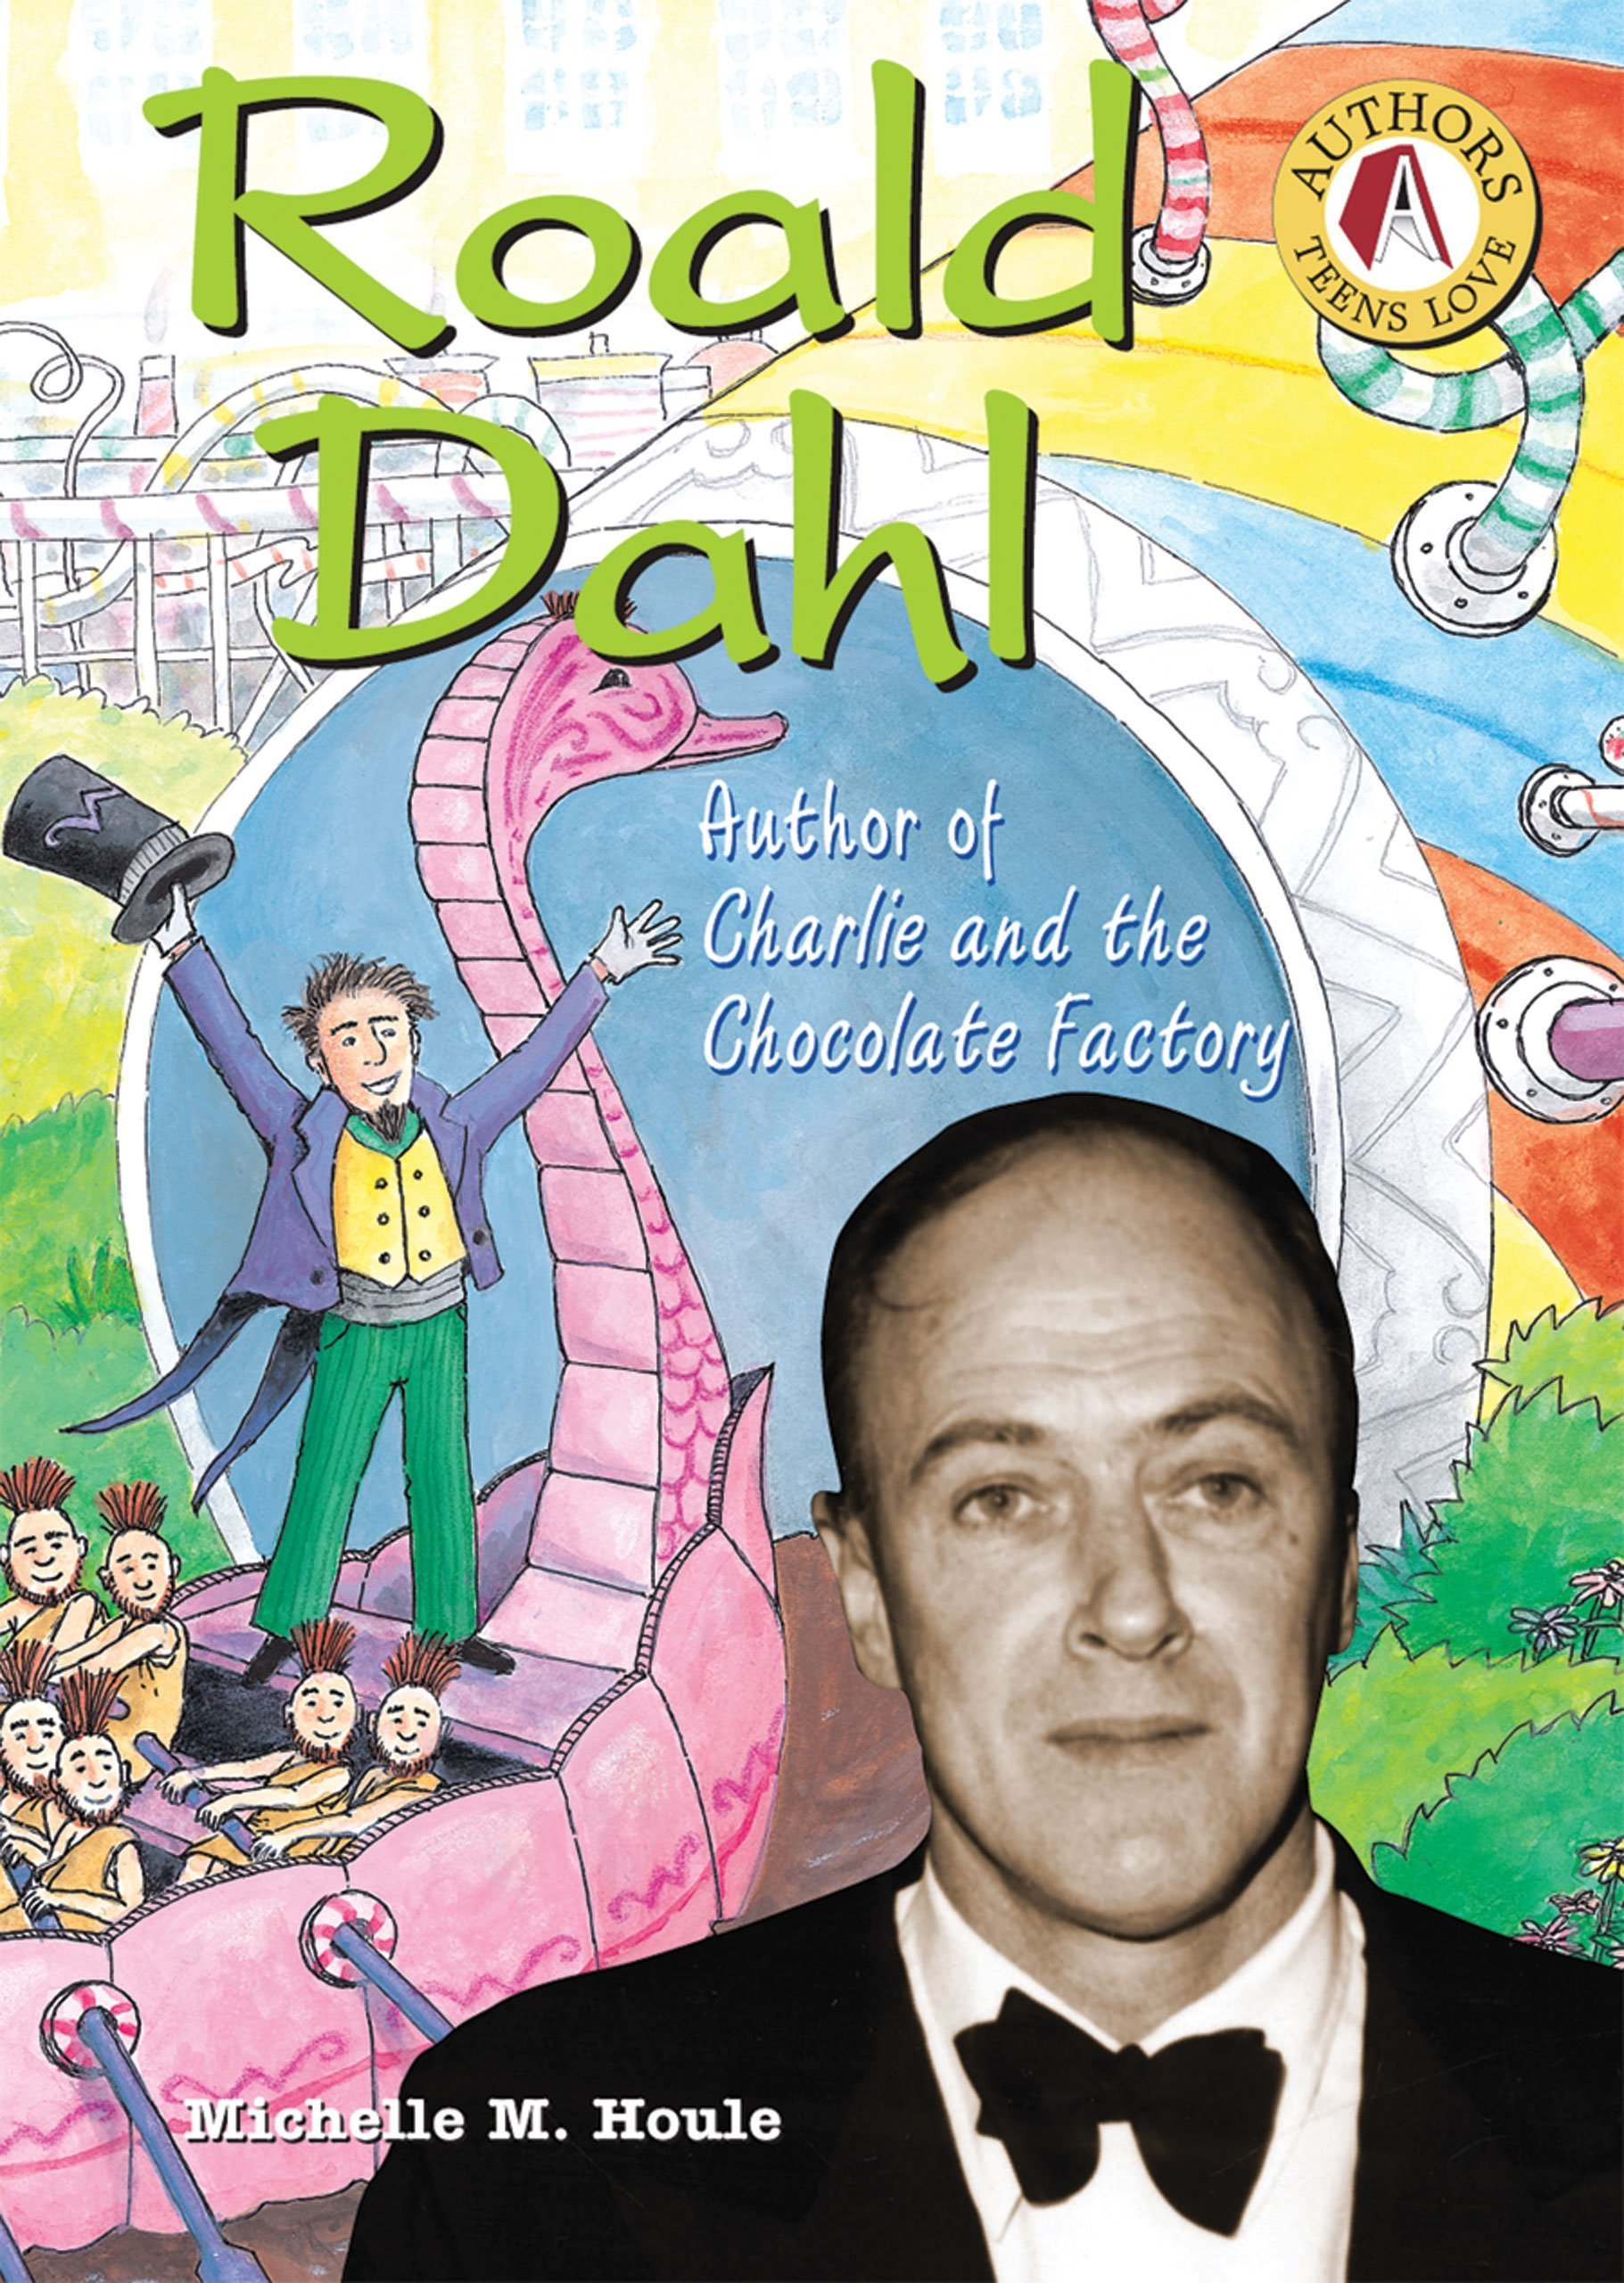 roald dahl author of charlie and the chocolate factory authors roald dahl author of charlie and the chocolate factory authors teens love michelle m houle 9780766023536 com books